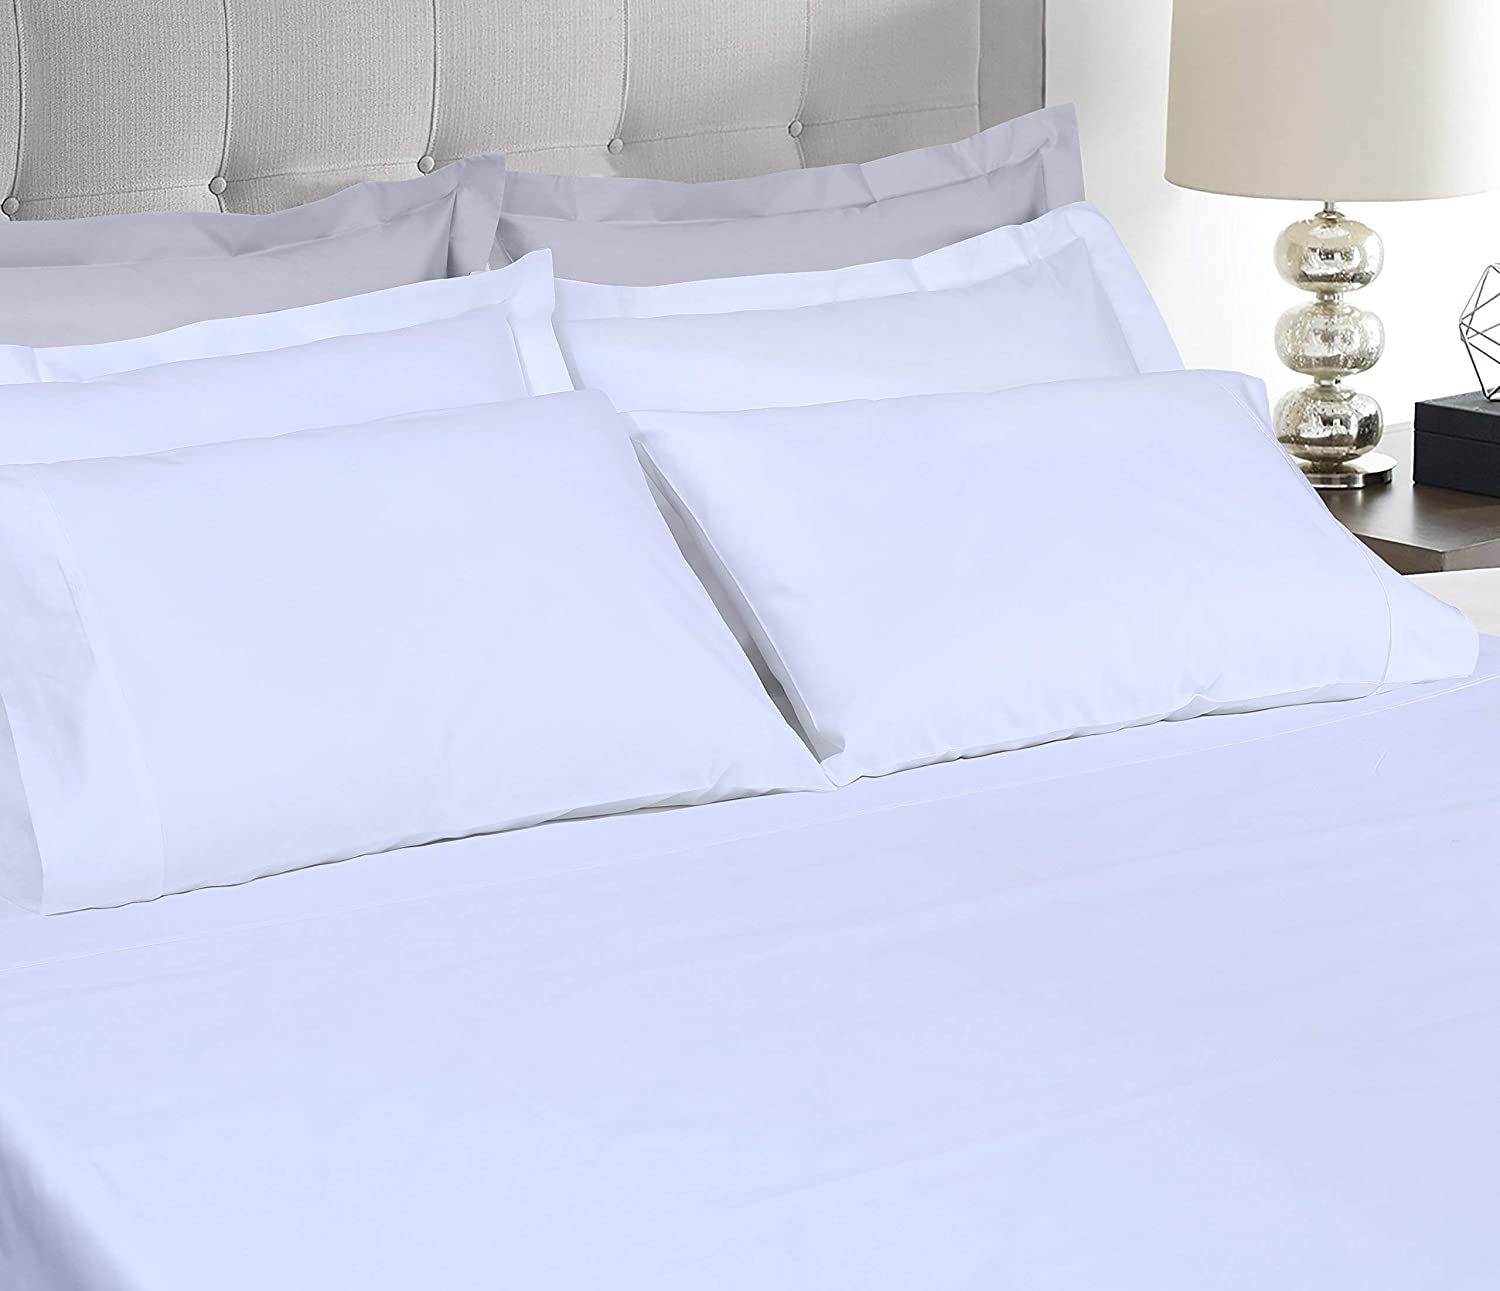 600 Thread Count Cotton Sheets White King & Cotton Blanket White King Size Combo